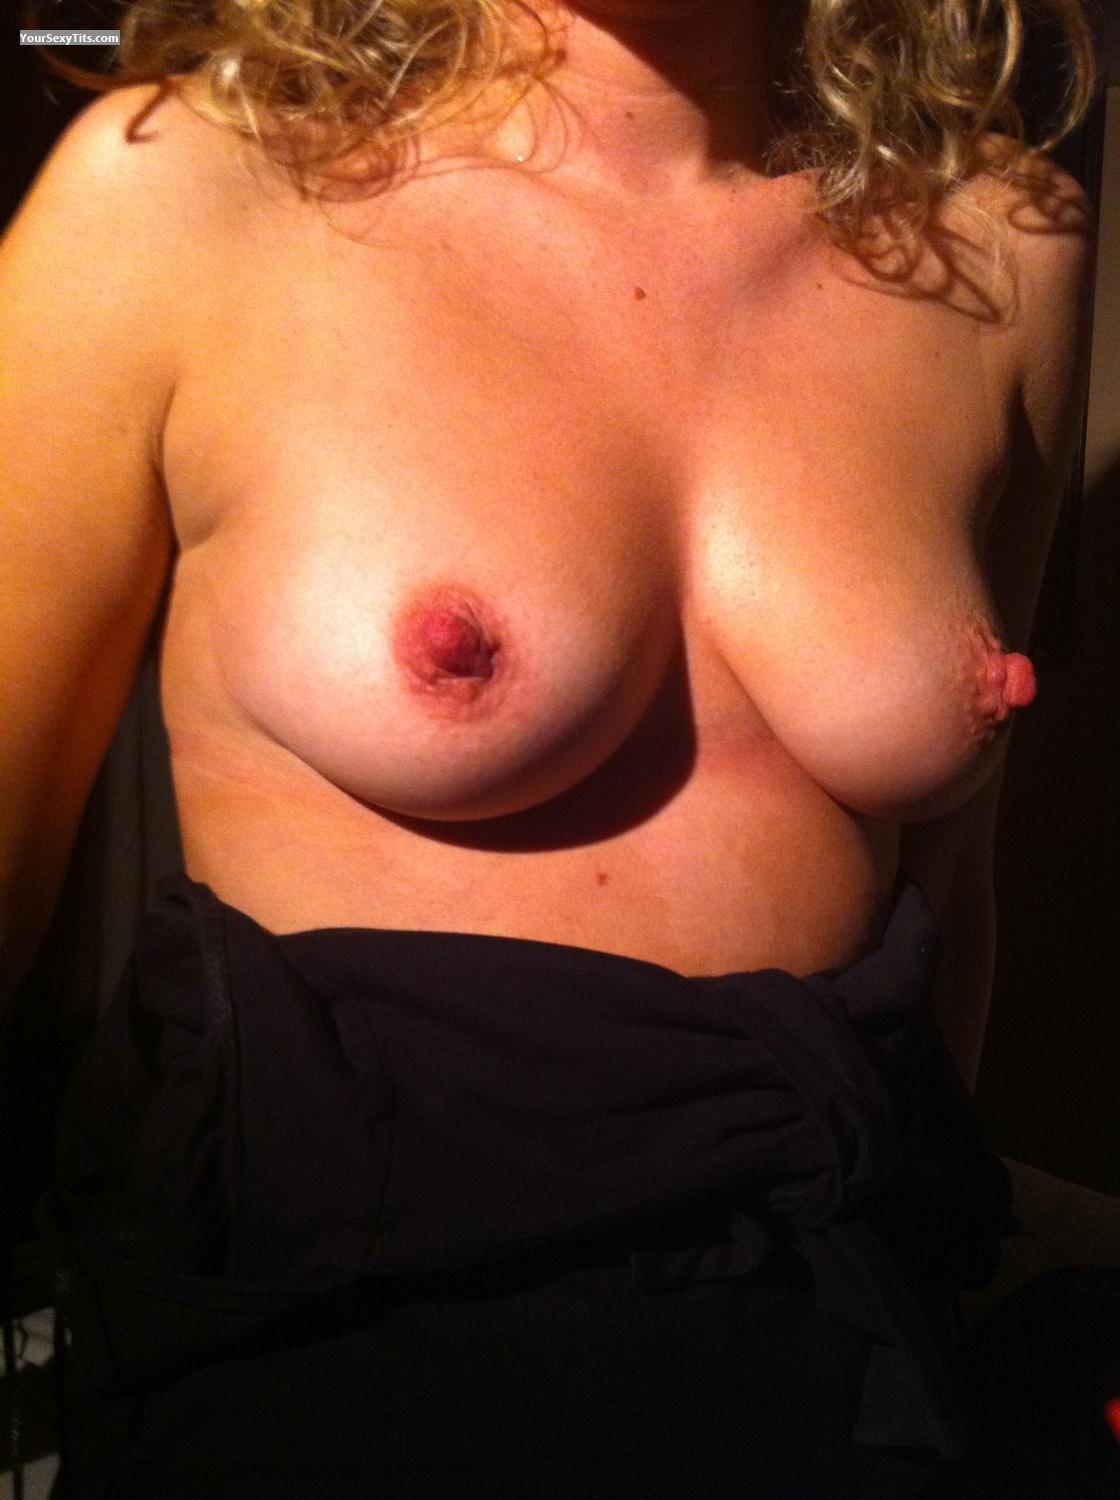 young amature nude vids